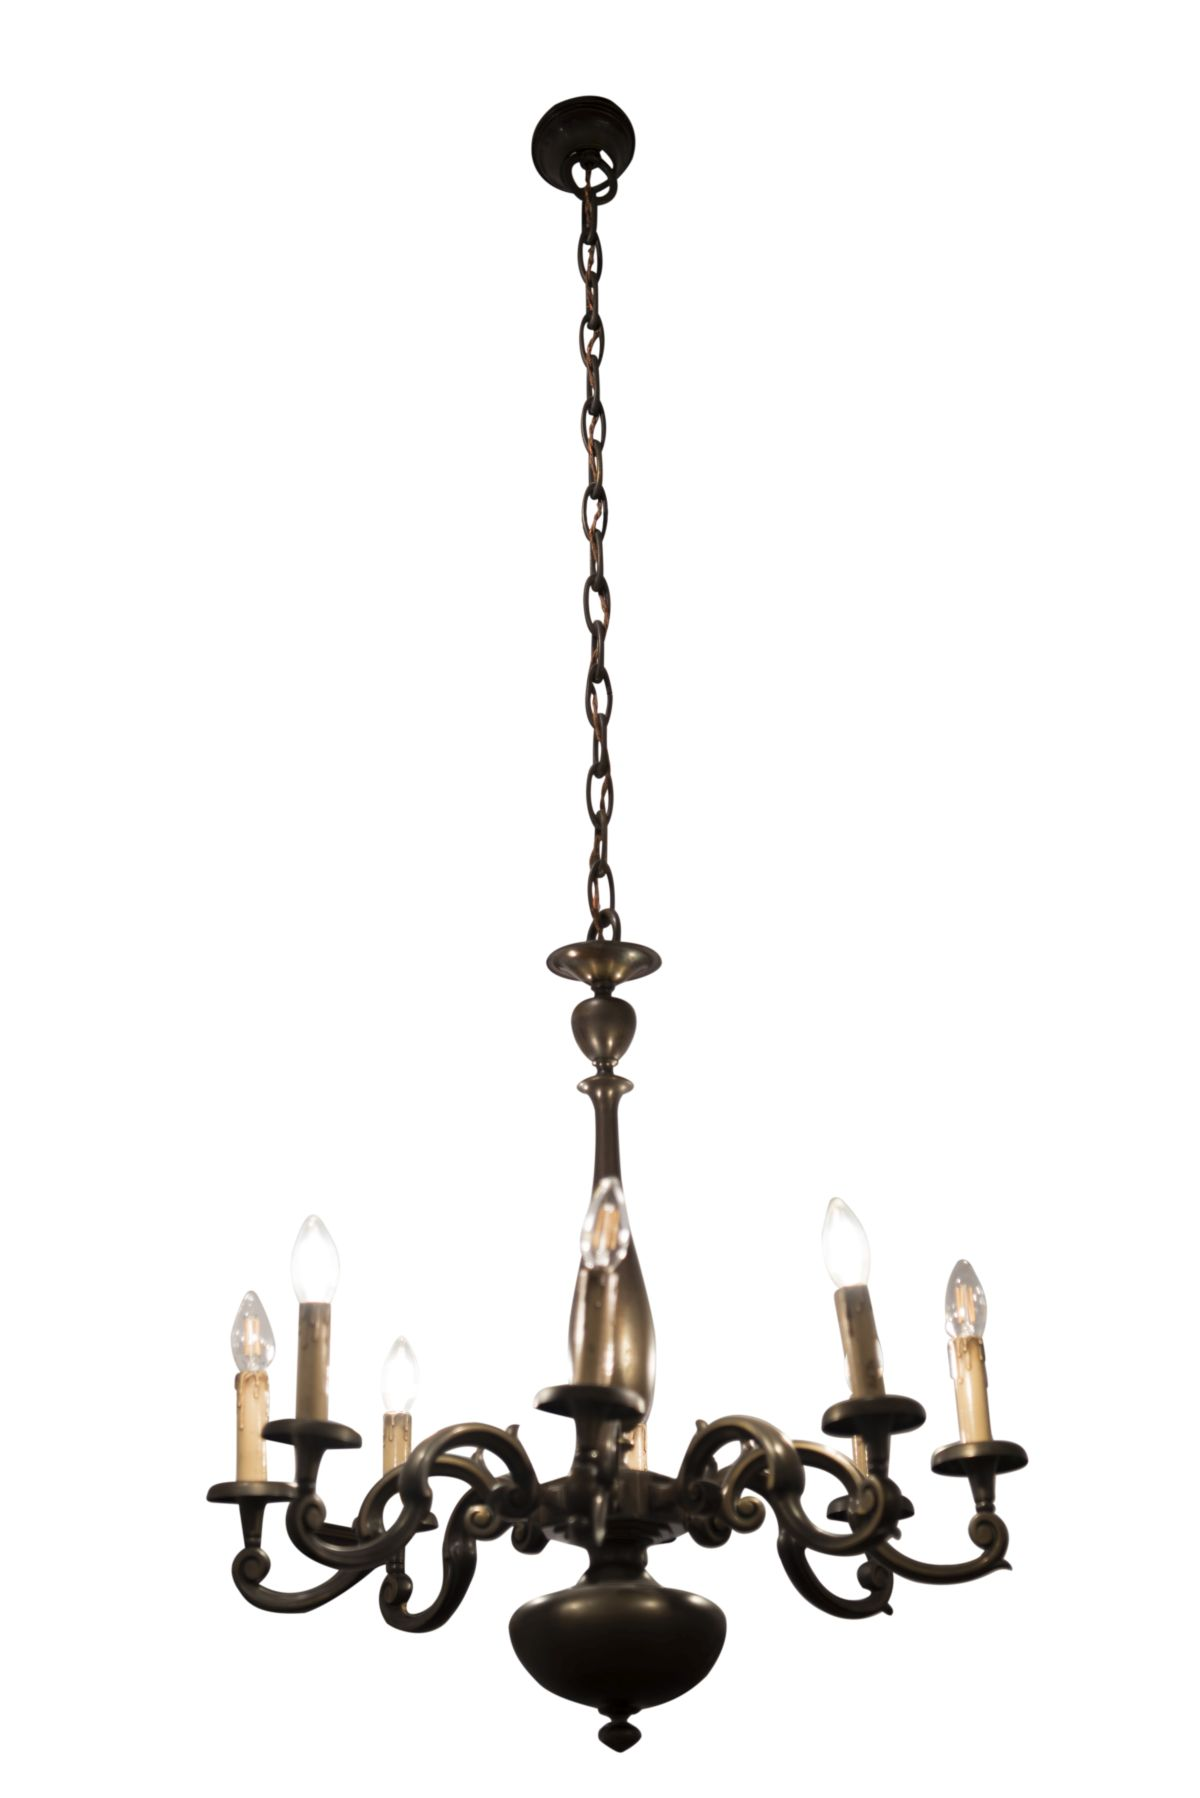 #61 Salon chandelier and two wall appliques | Salon Luster und 2 Wandappliken Image